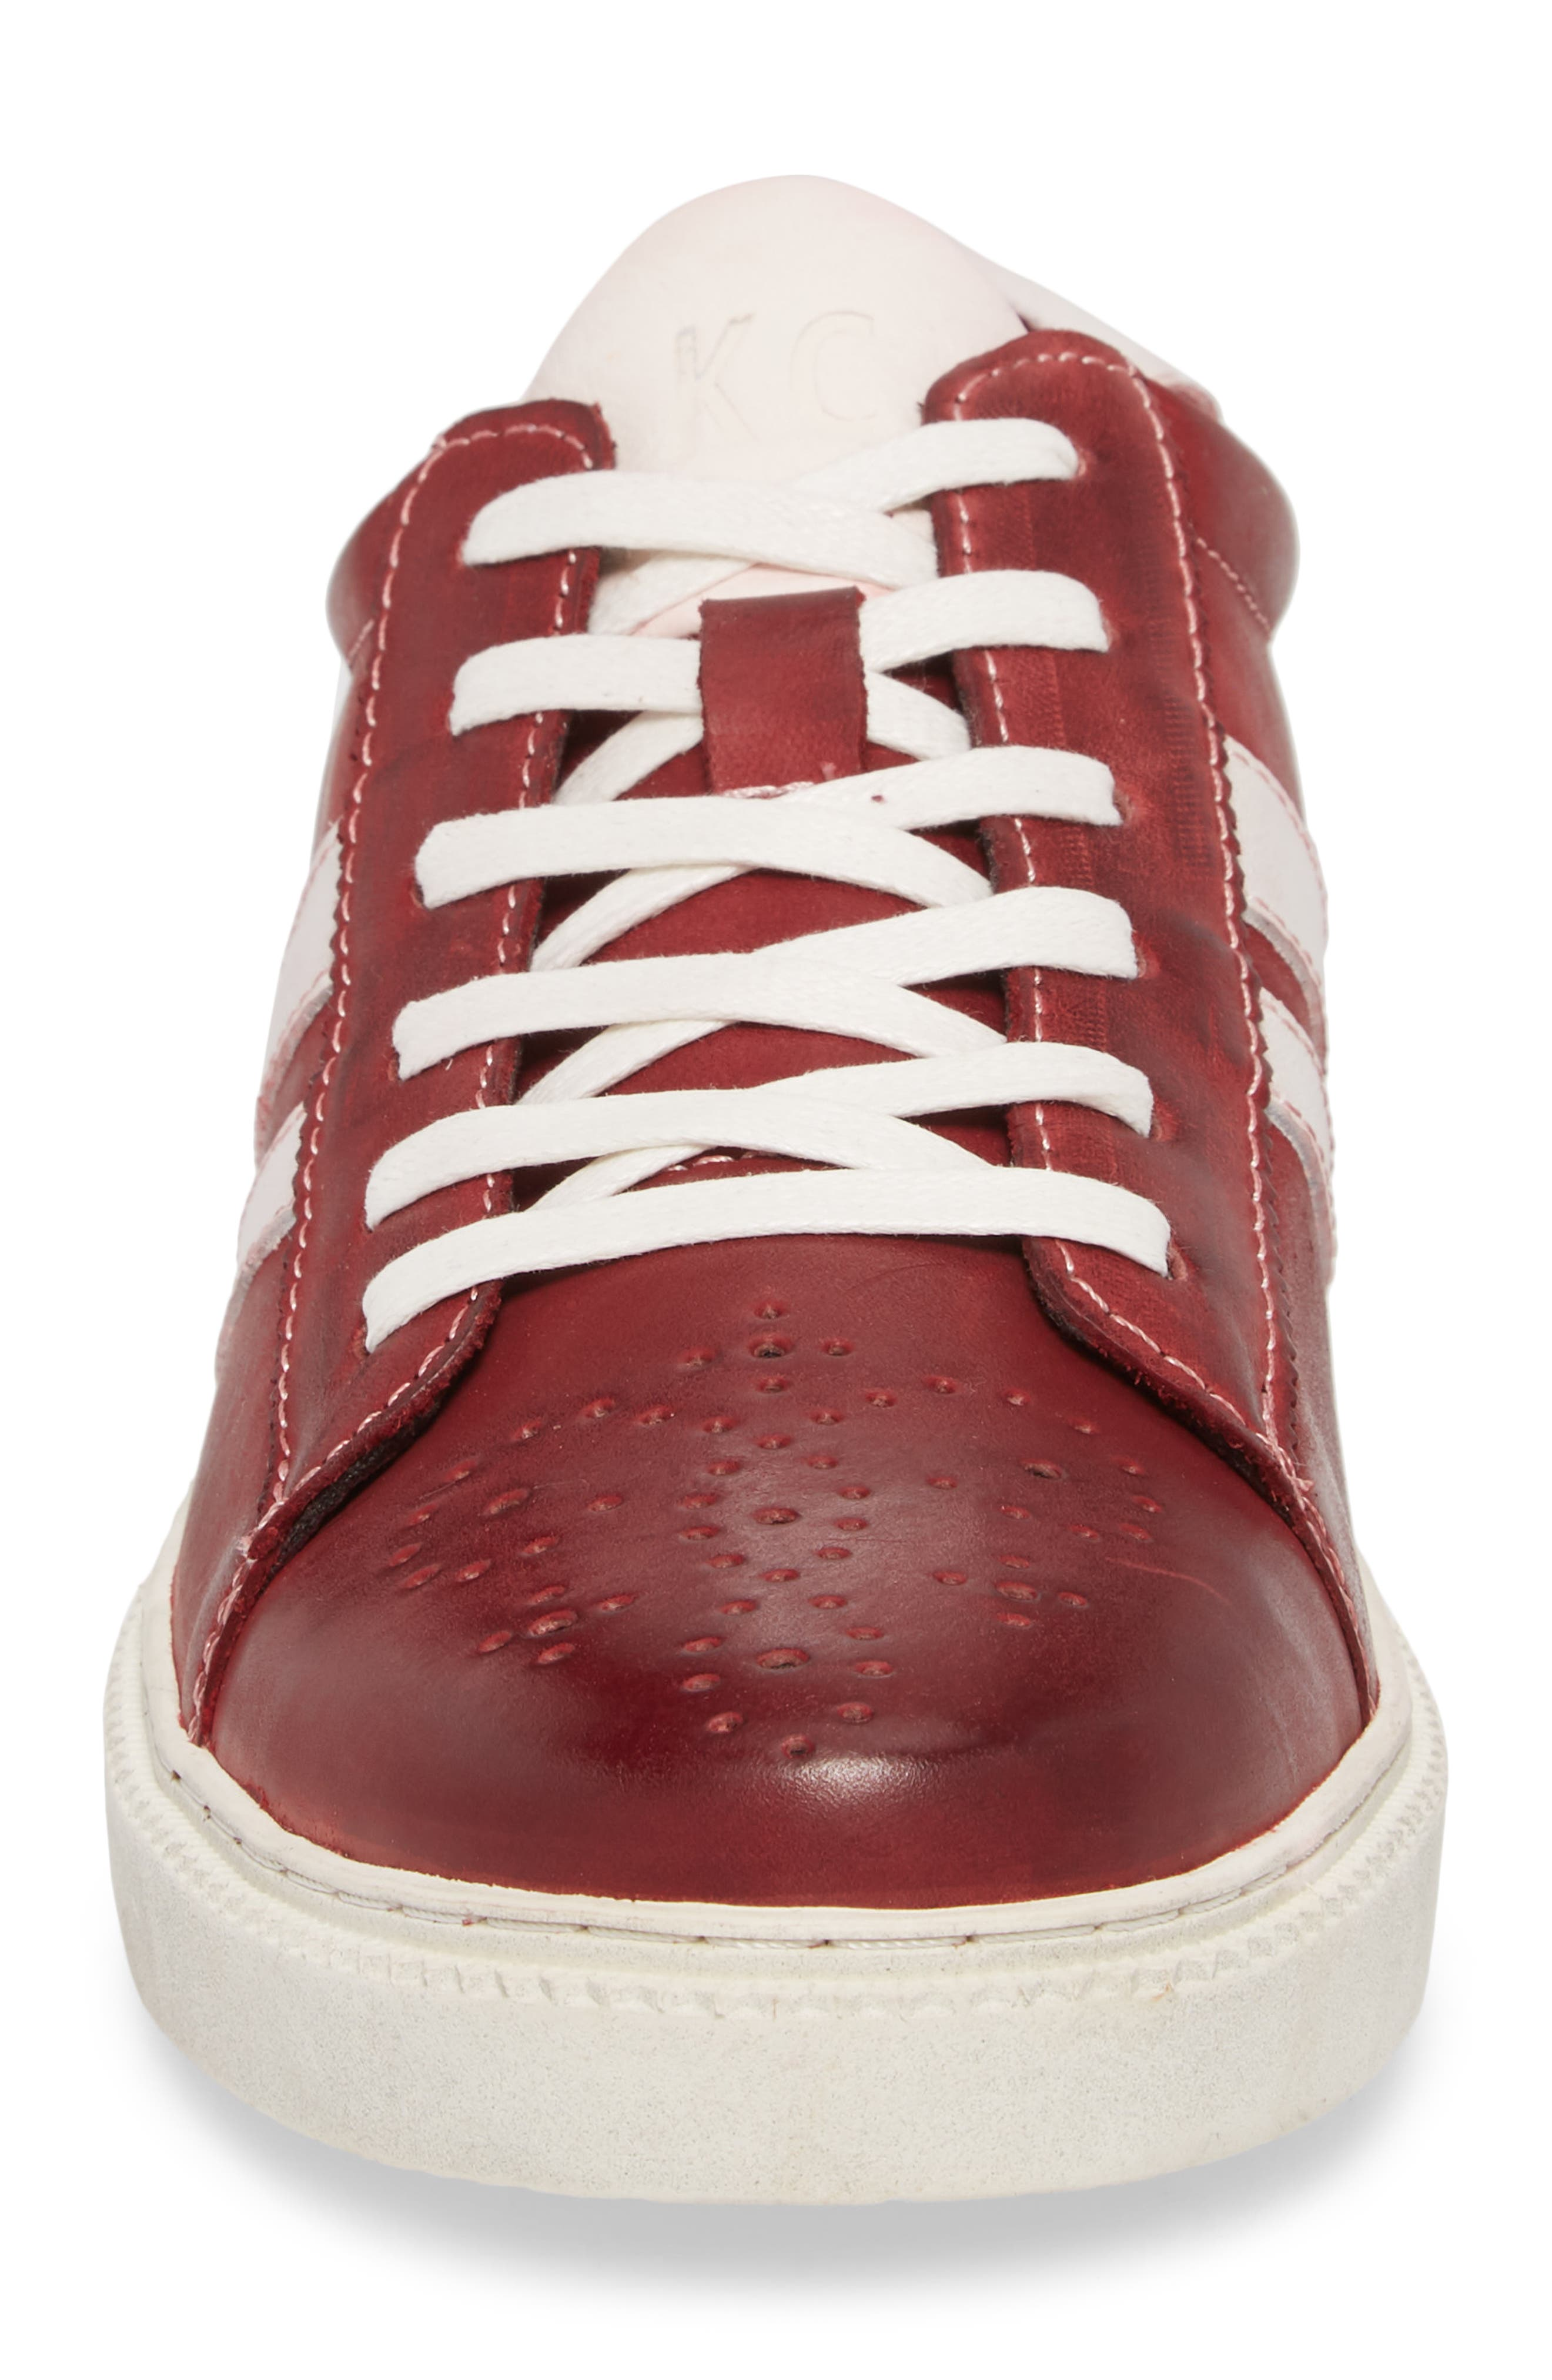 Madox Low Top Sneaker,                             Alternate thumbnail 4, color,                             RED